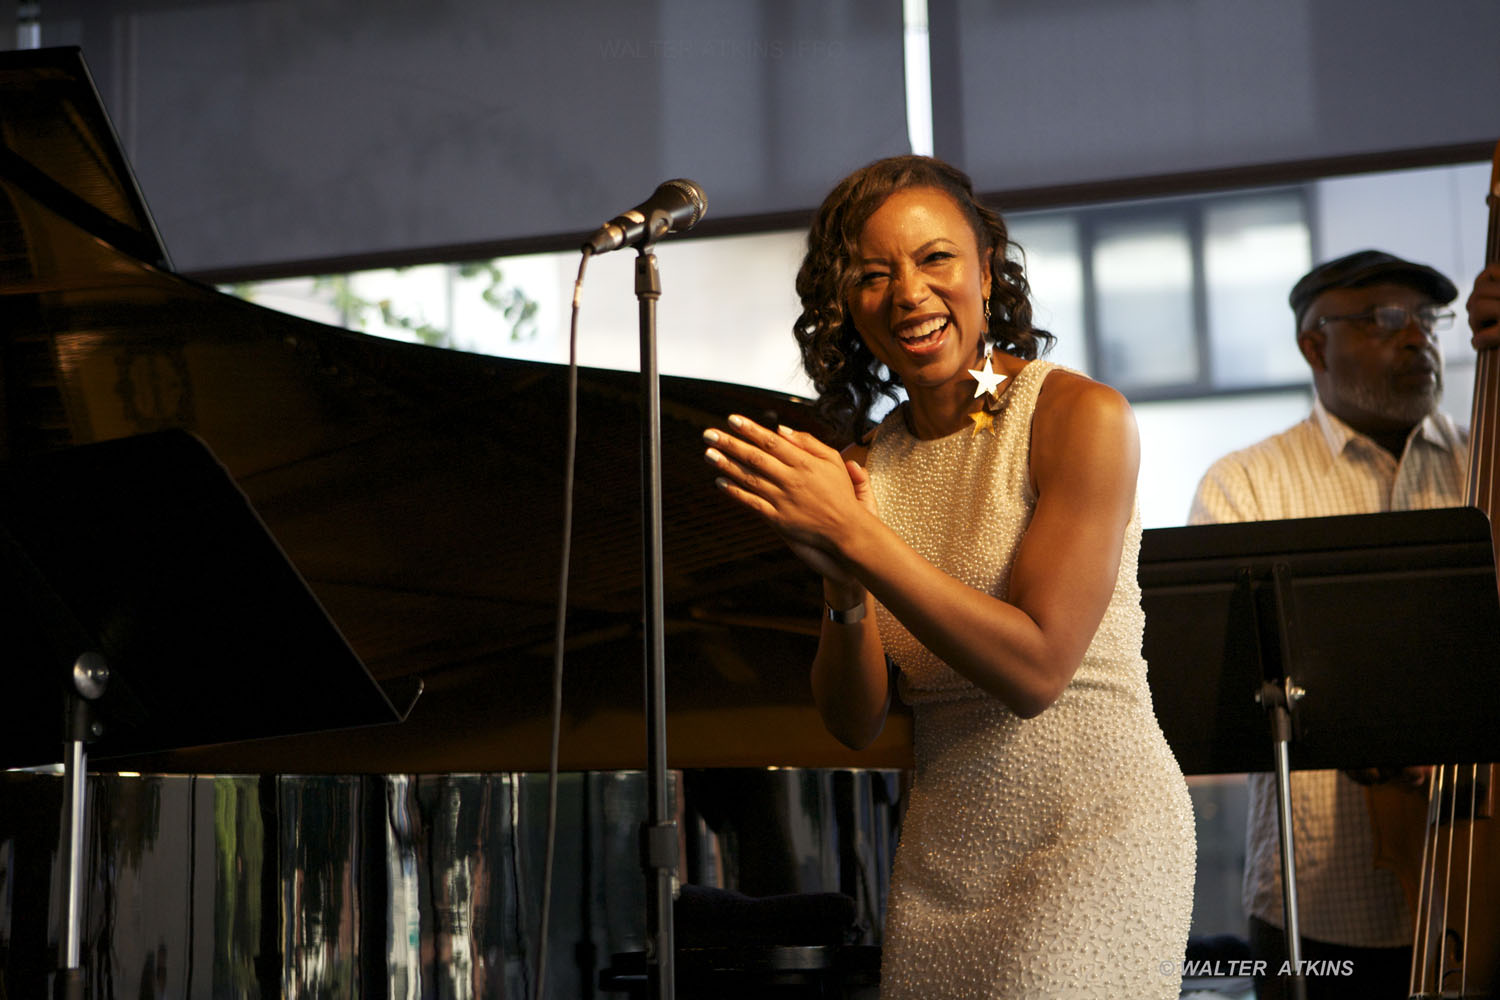 Tiffany Austin at Sfjazz